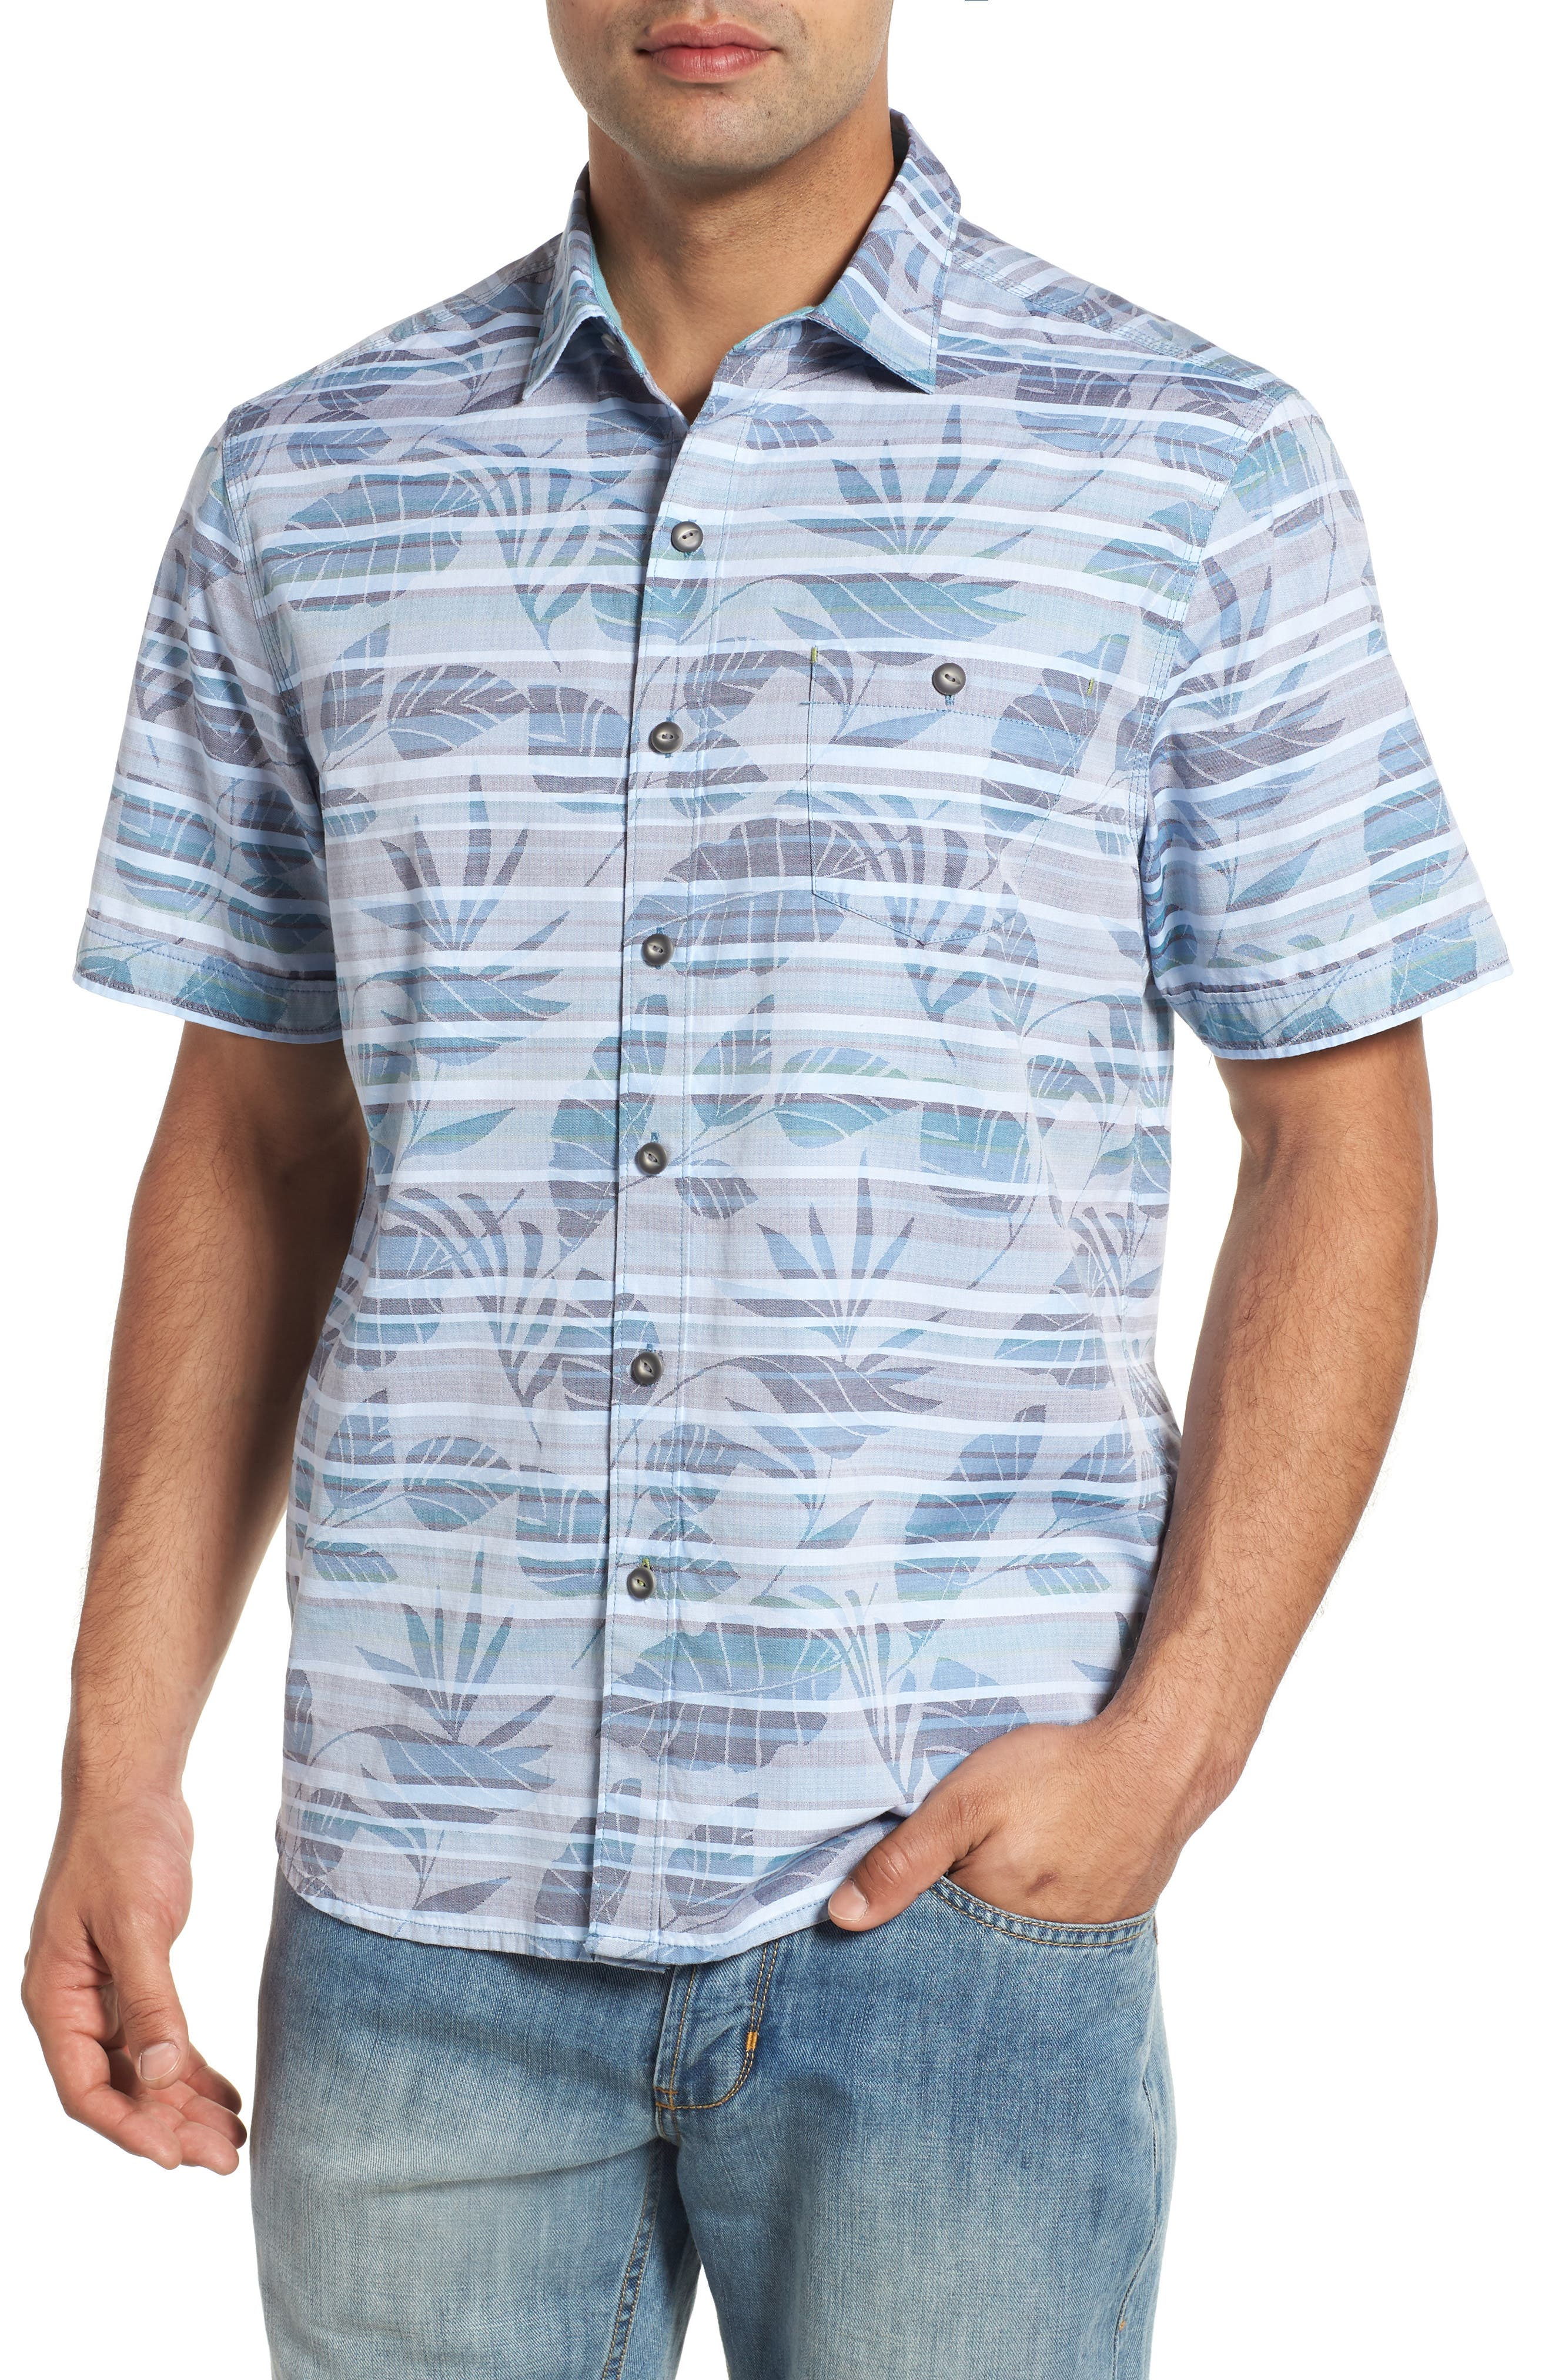 Playa of Paradise Regular Fit Camp Shirt,                             Main thumbnail 1, color,                             SEAGROVE